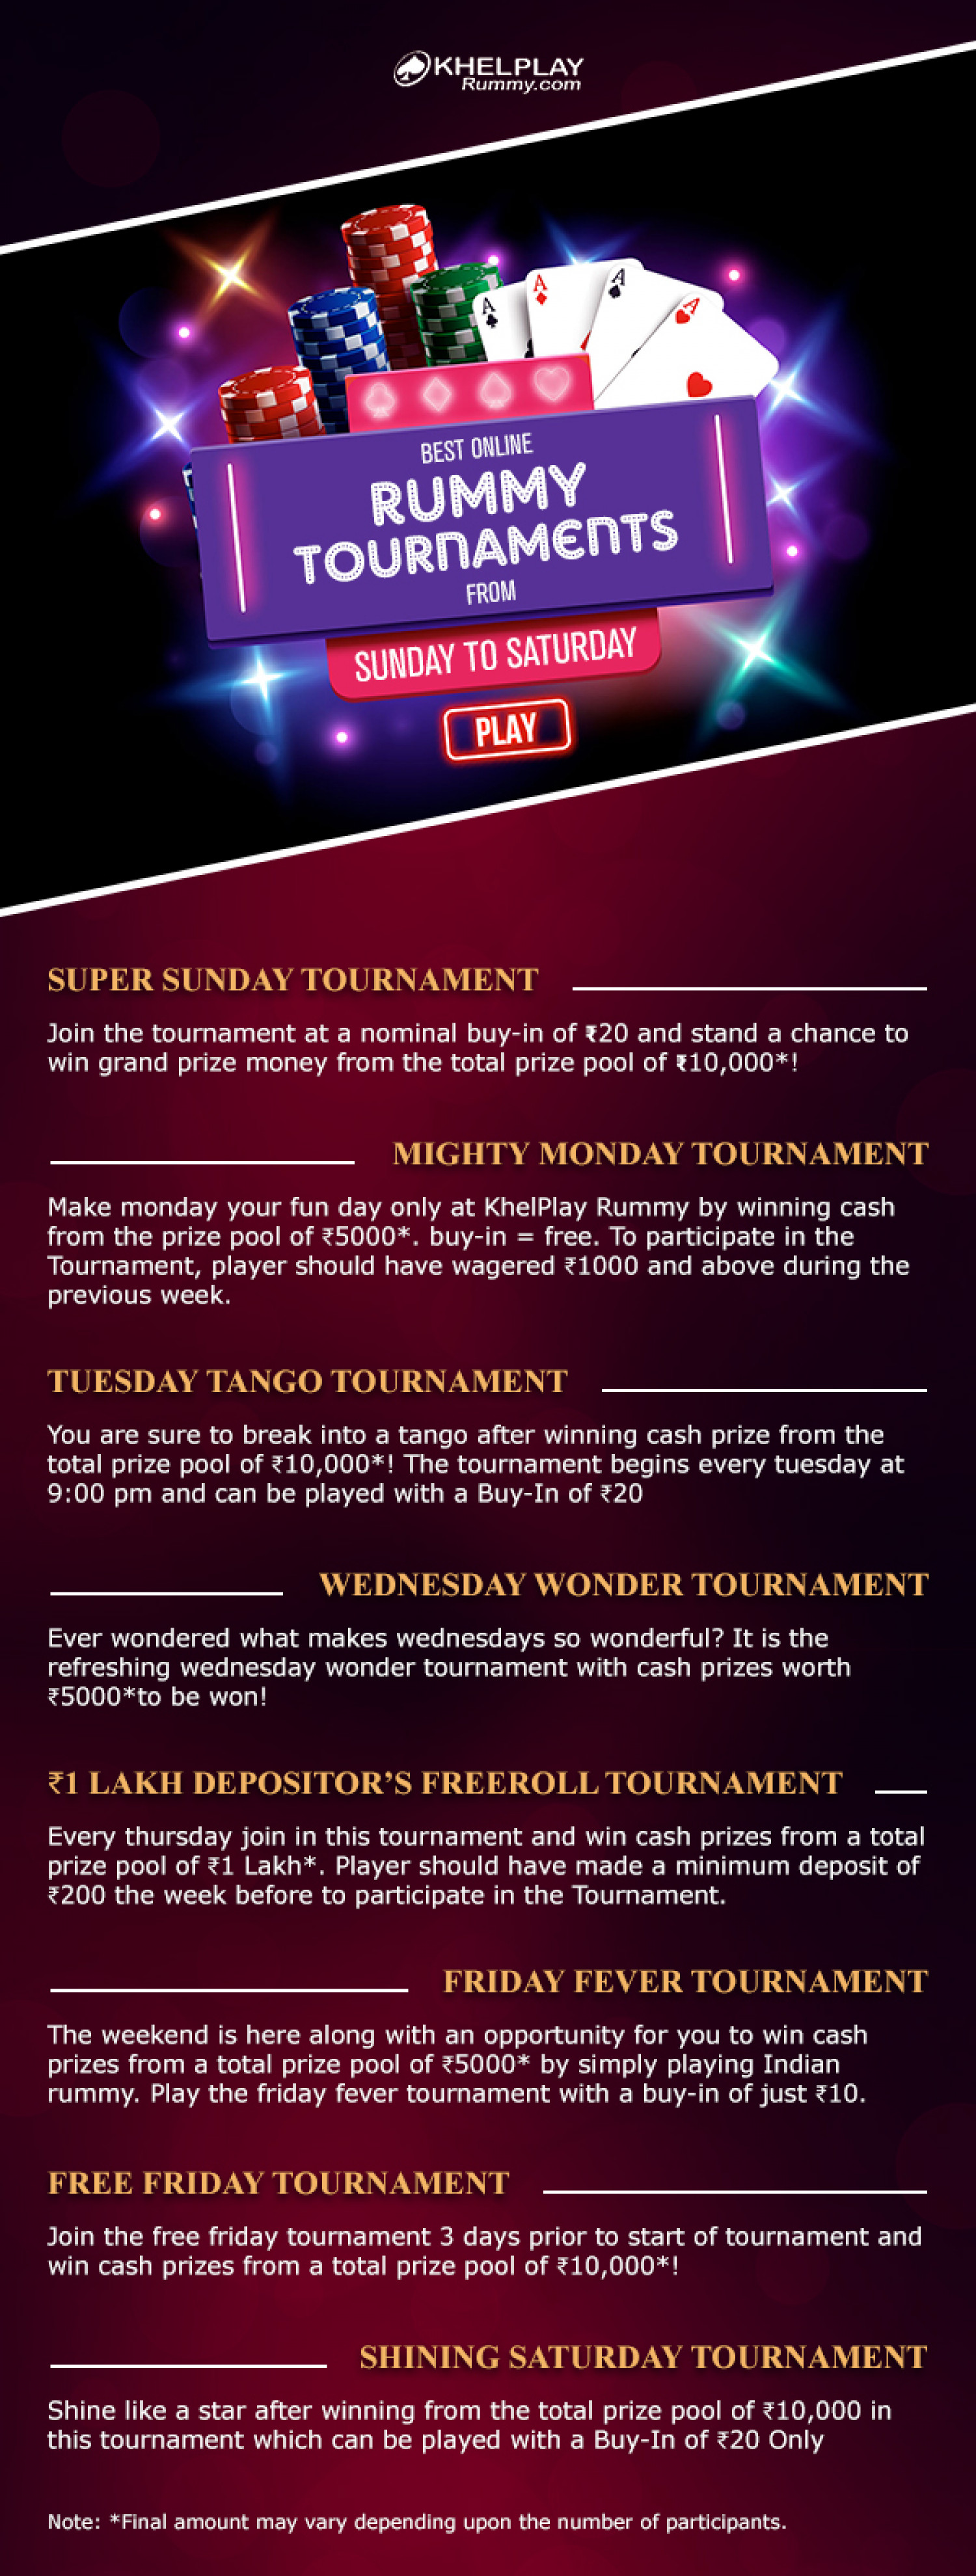 Best Online Rummy Tournaments from Sunday to Saturday Infographic